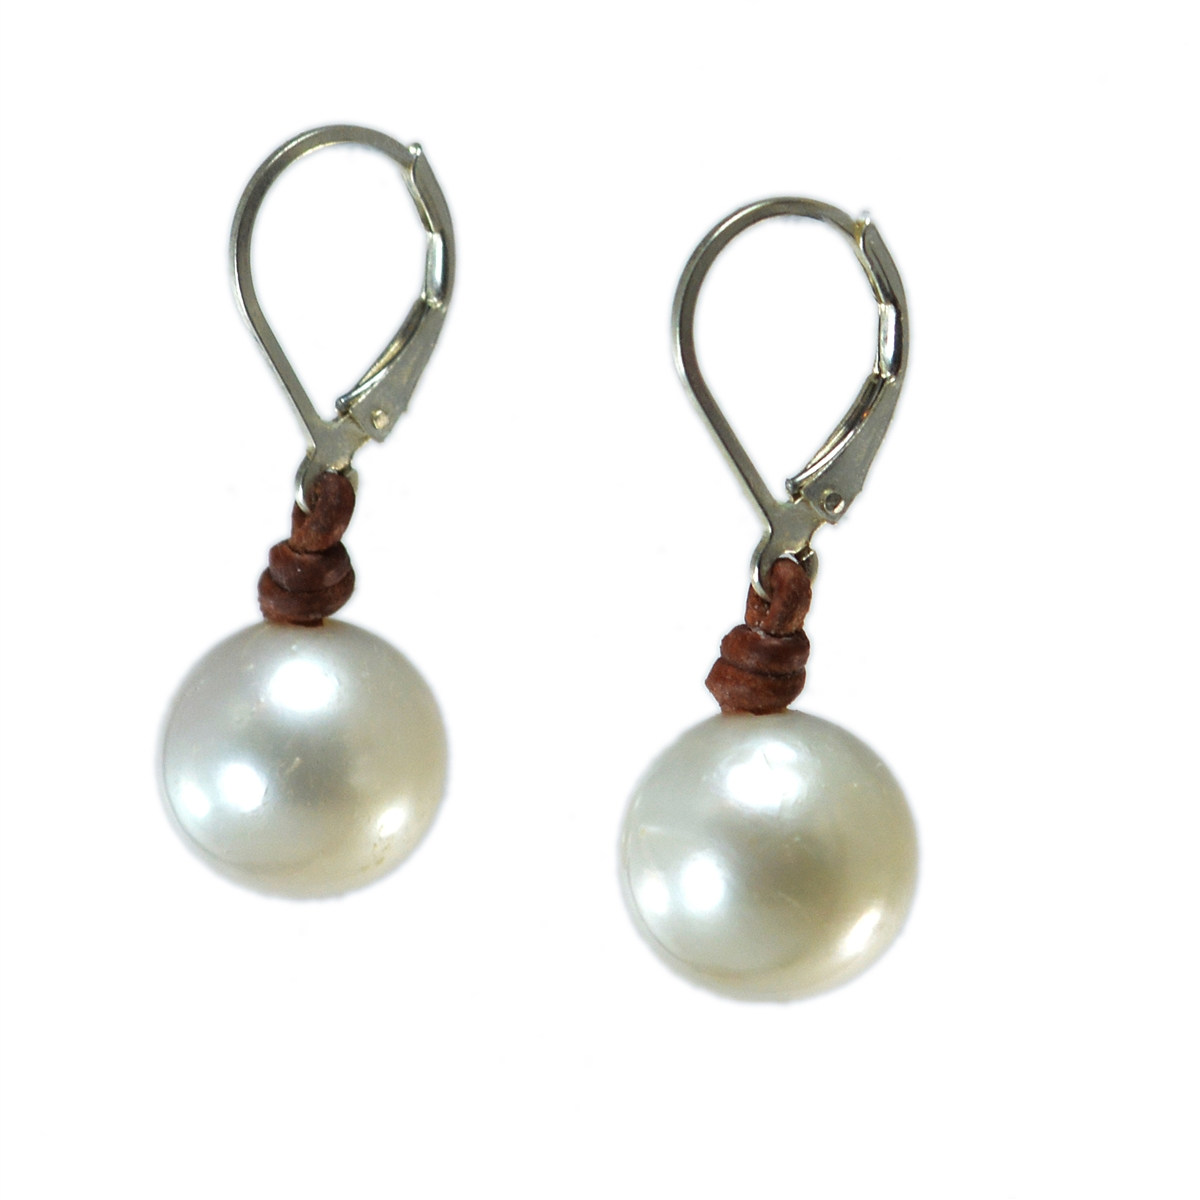 set earrings silver fotor in todaycharm wedding img day gold necklace company satin earring ar white pink products jewelry or pearls and rose pearl single blue